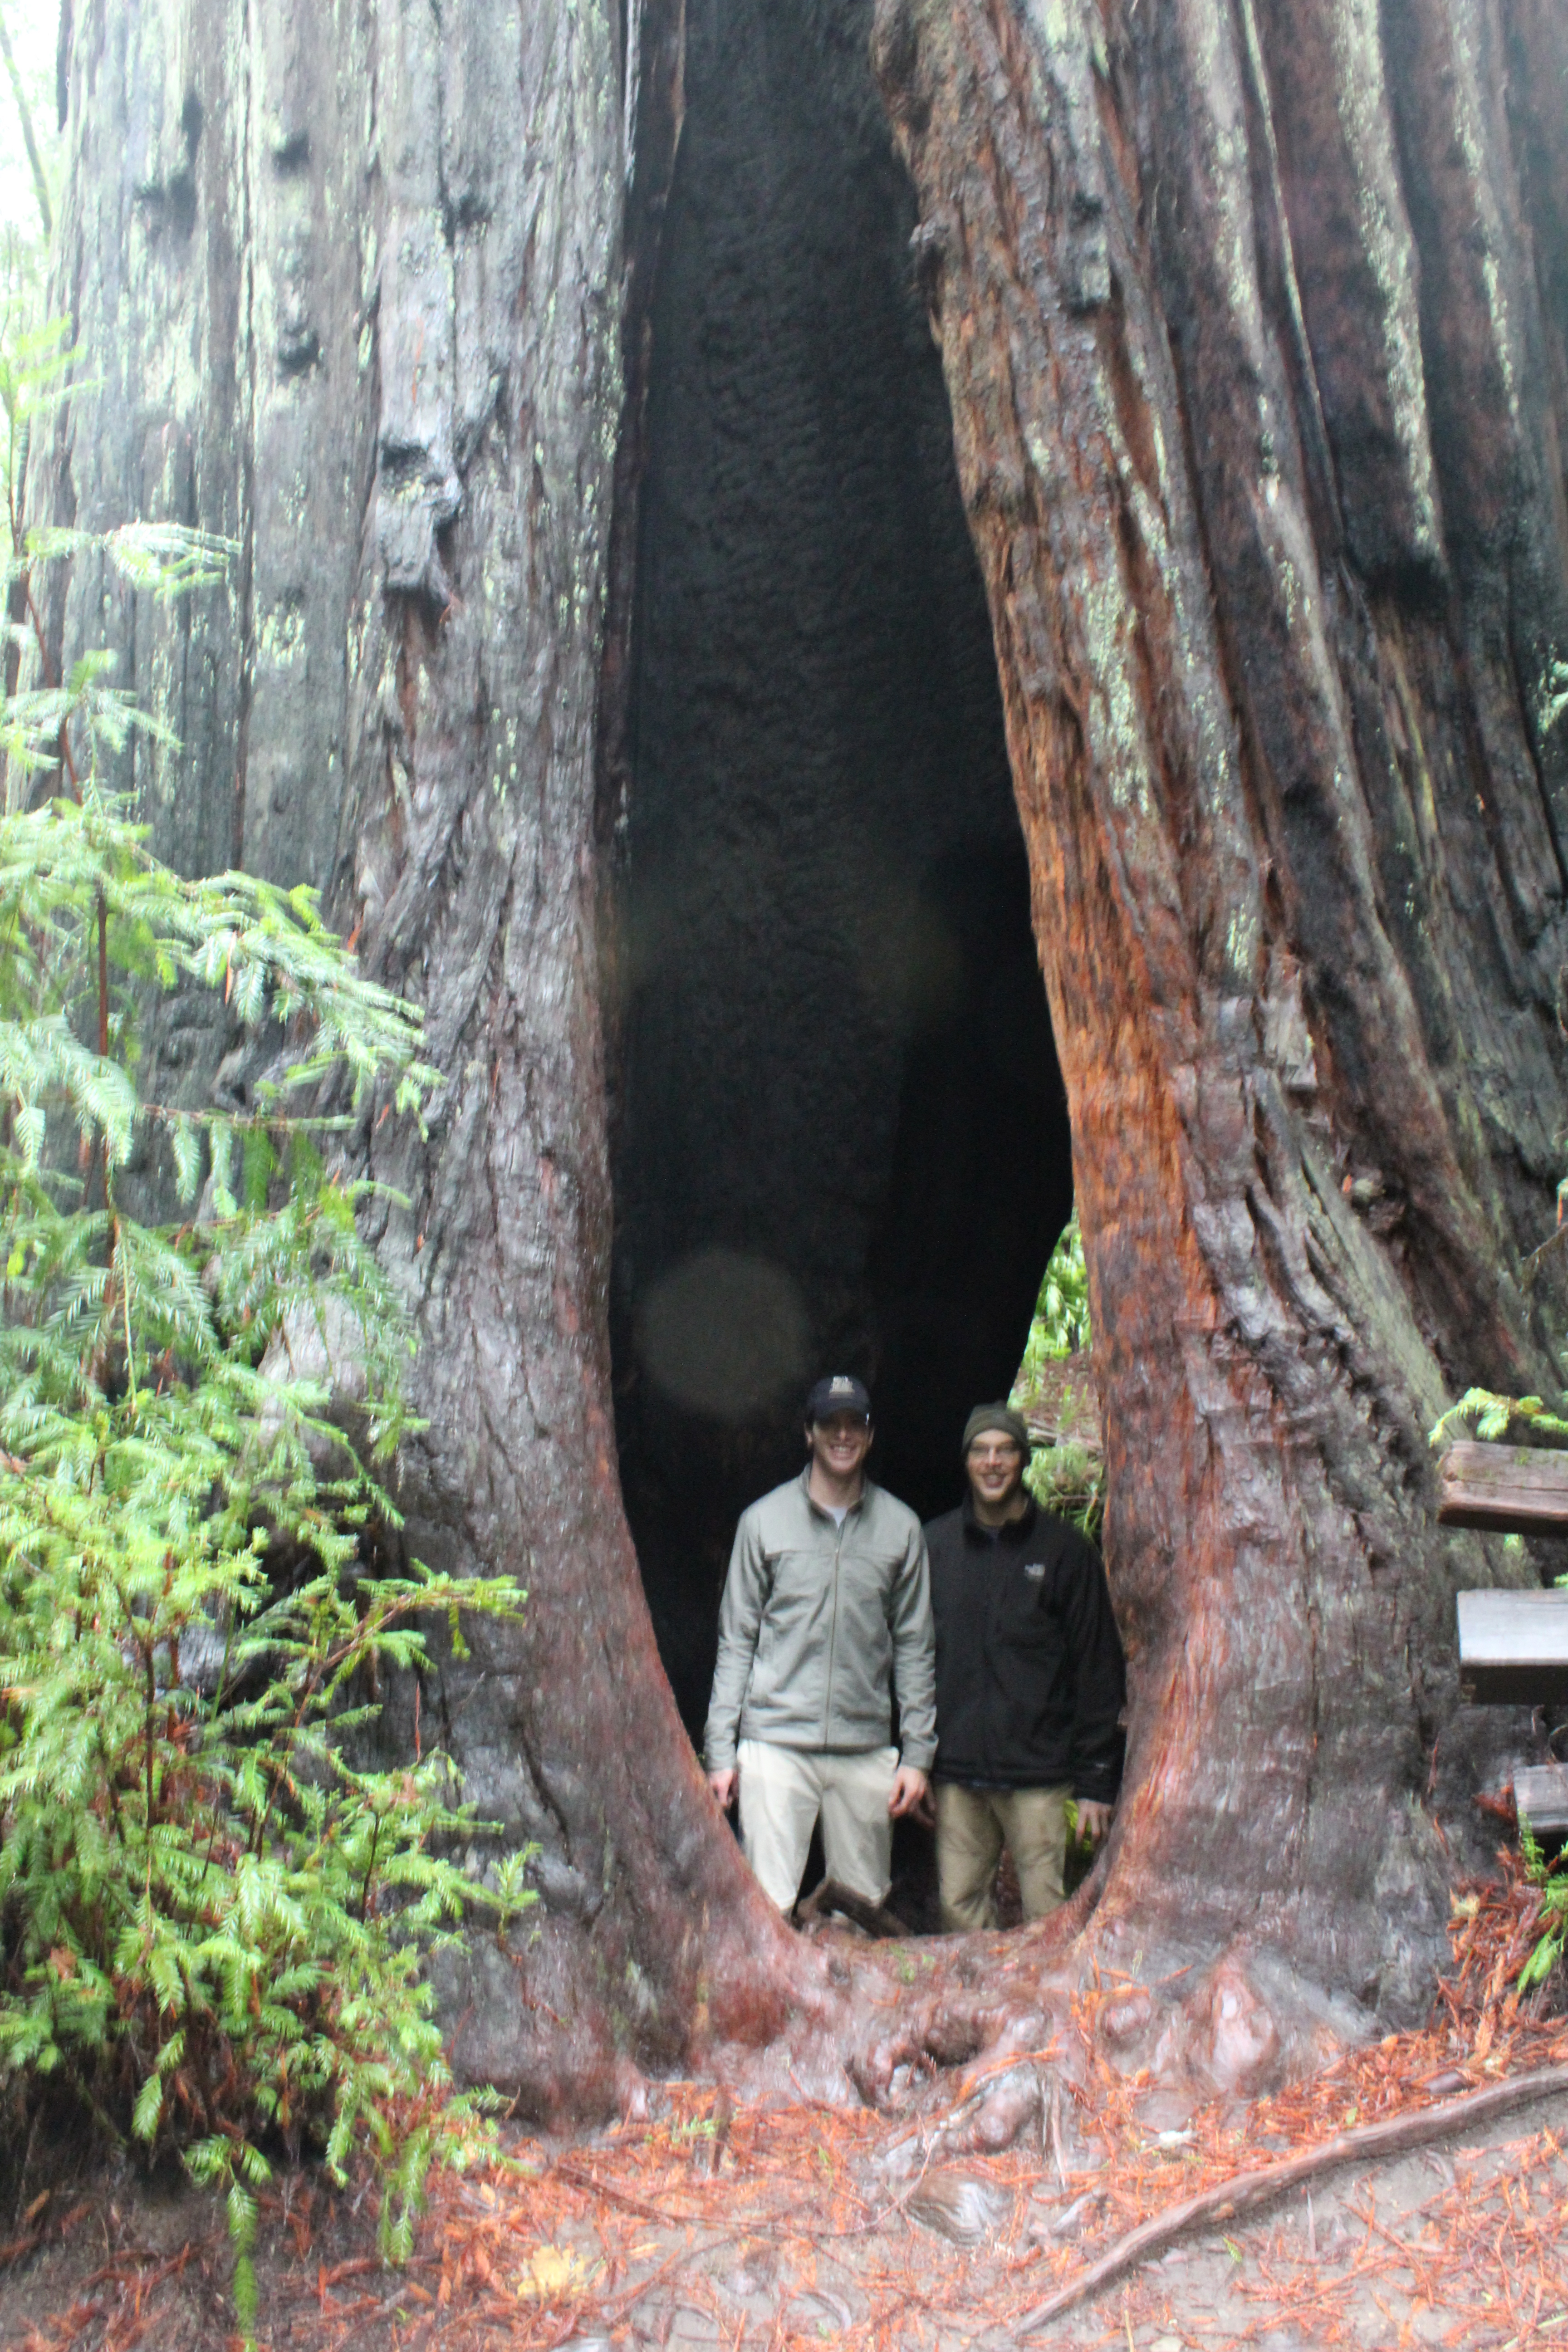 redwoods in awe, redwoods misty, redwoods feeling small, sonoma in december